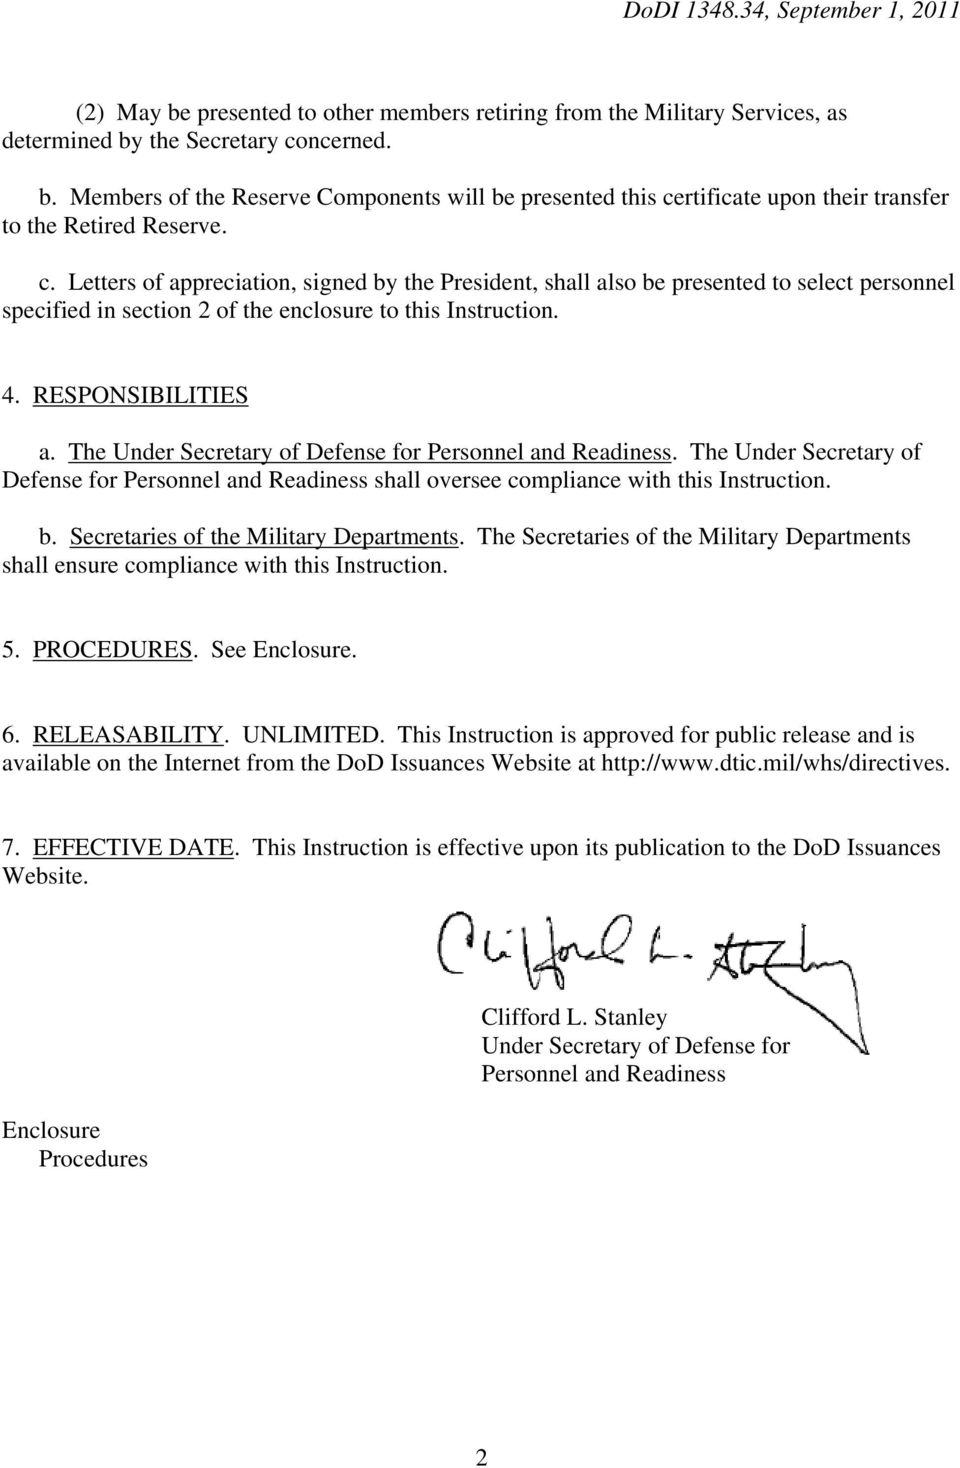 The Under Secretary of Defense for Personnel and Readiness. The Under Secretary of Defense for Personnel and Readiness shall oversee compliance with this Instruction. b.